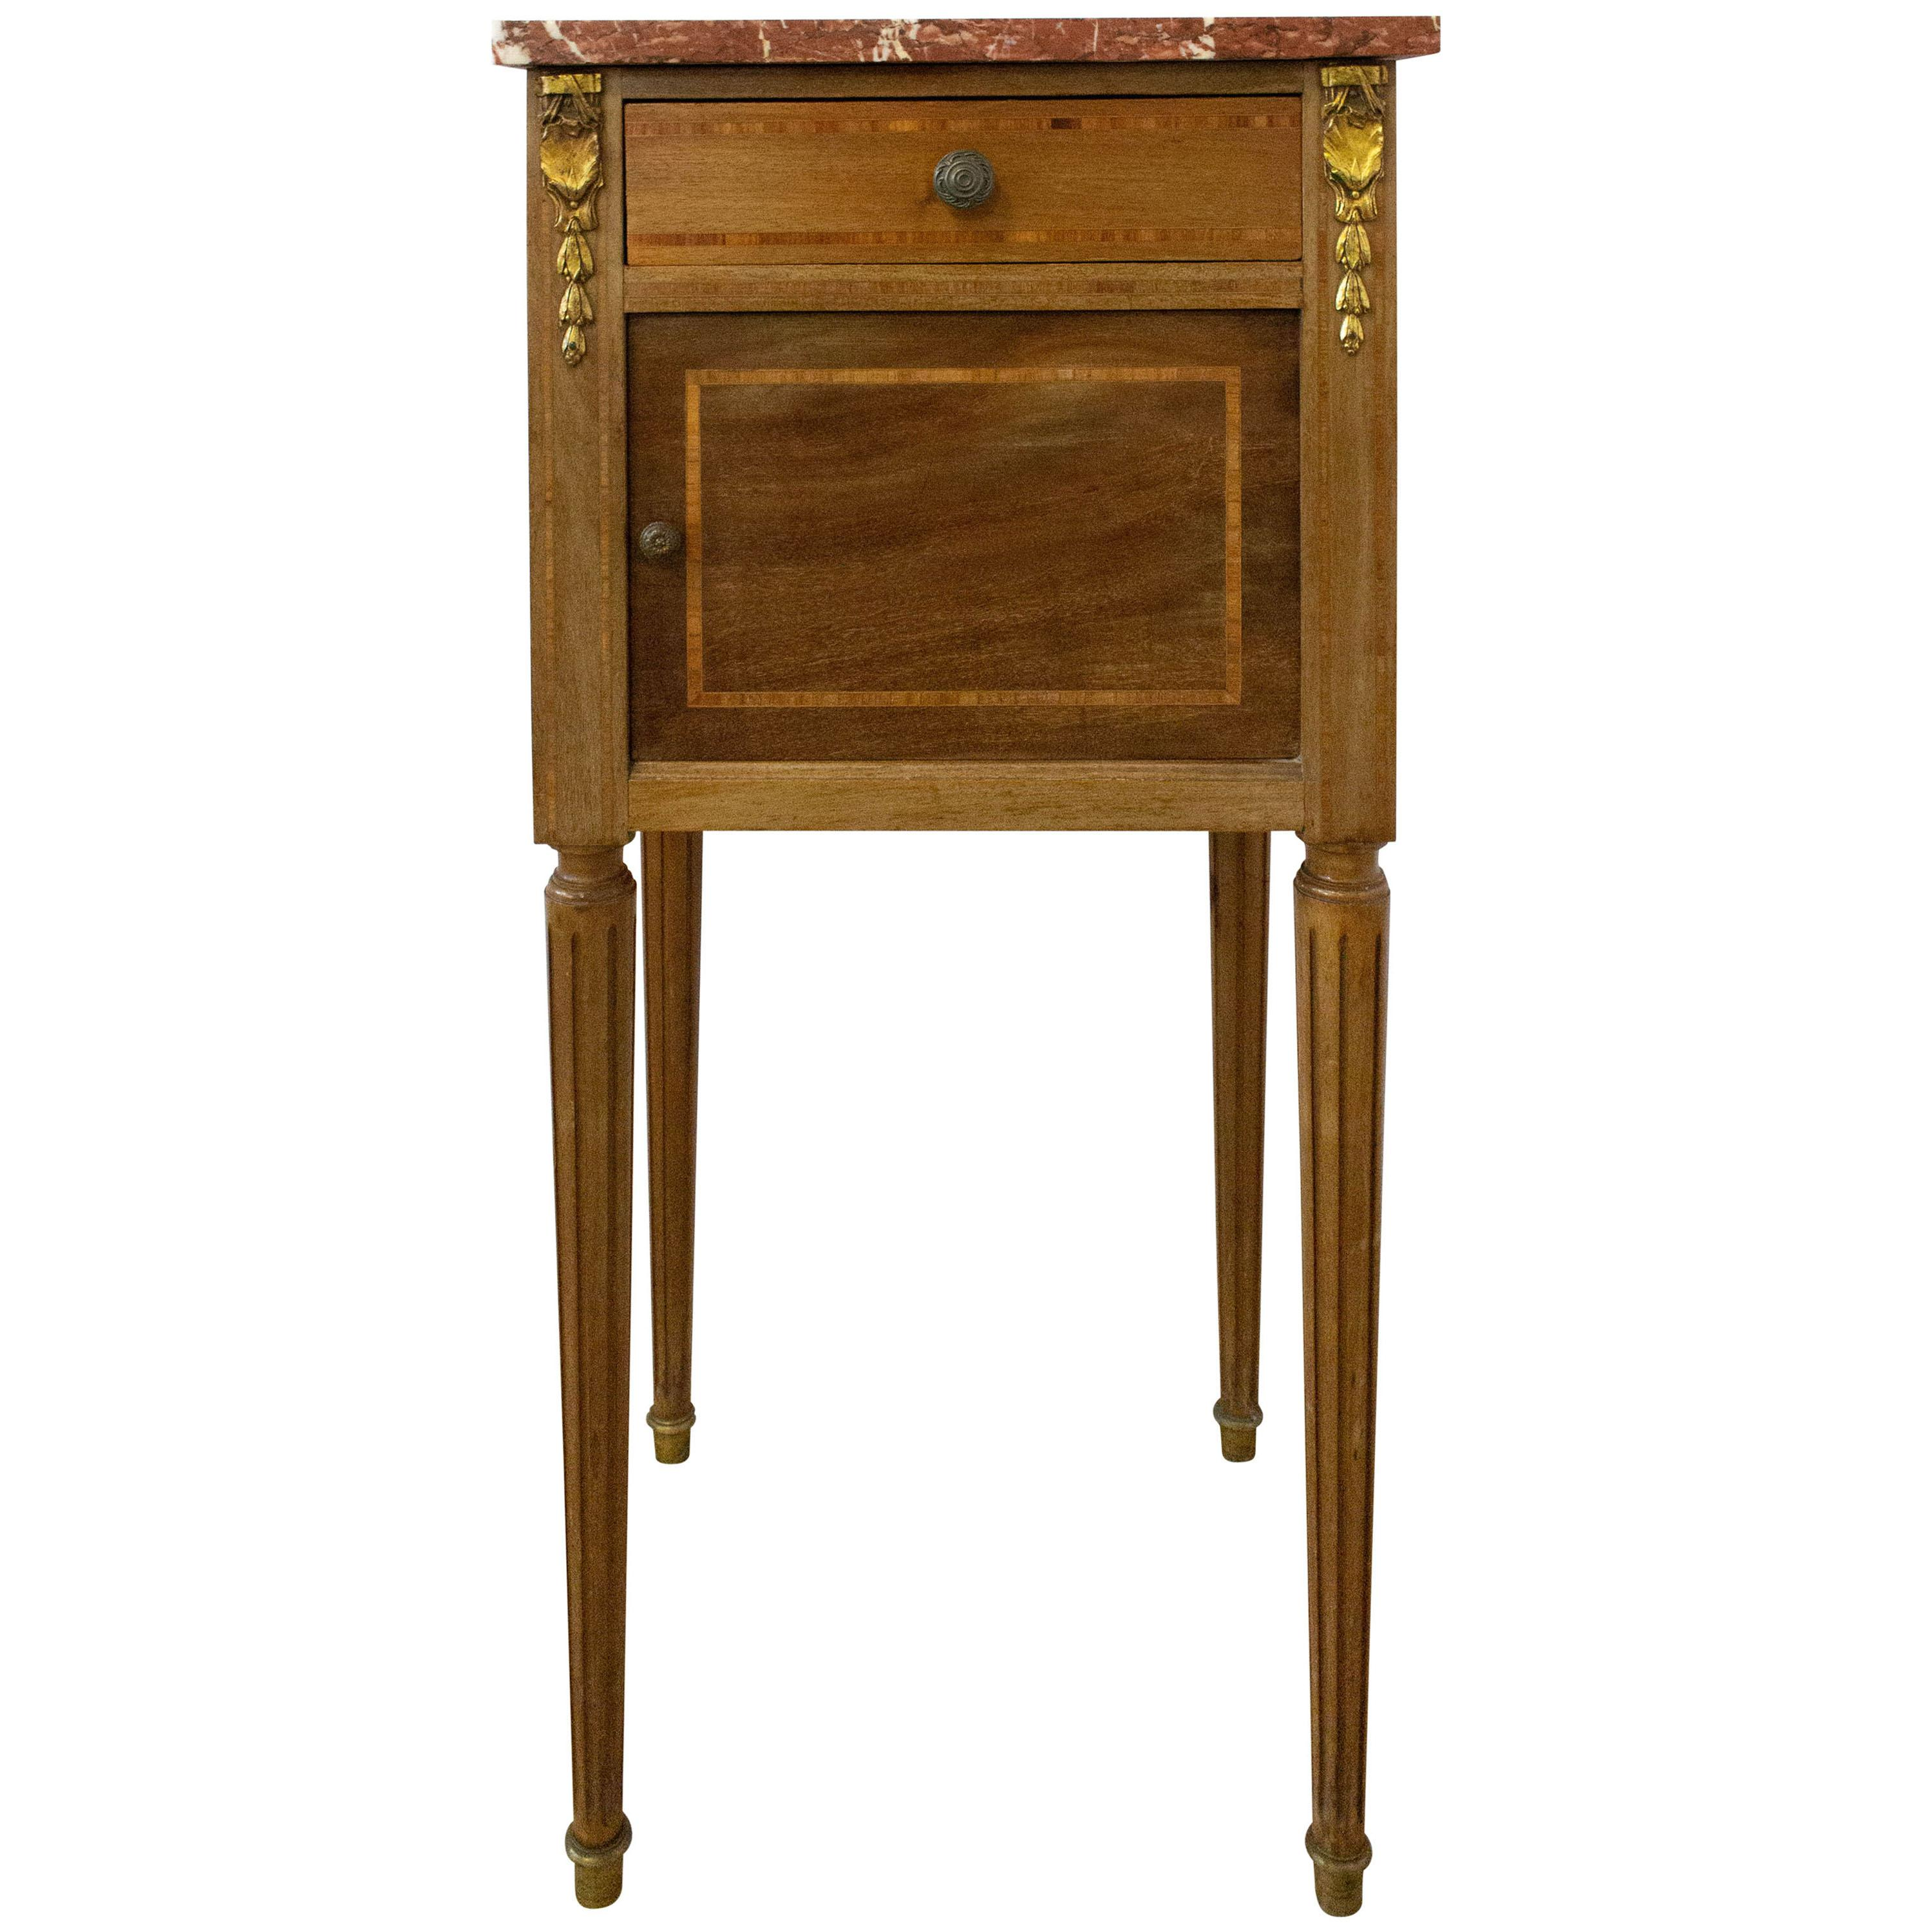 Antique French Nightstand Side Cabinet Bedside Table Mahogany Marble Top, 1900